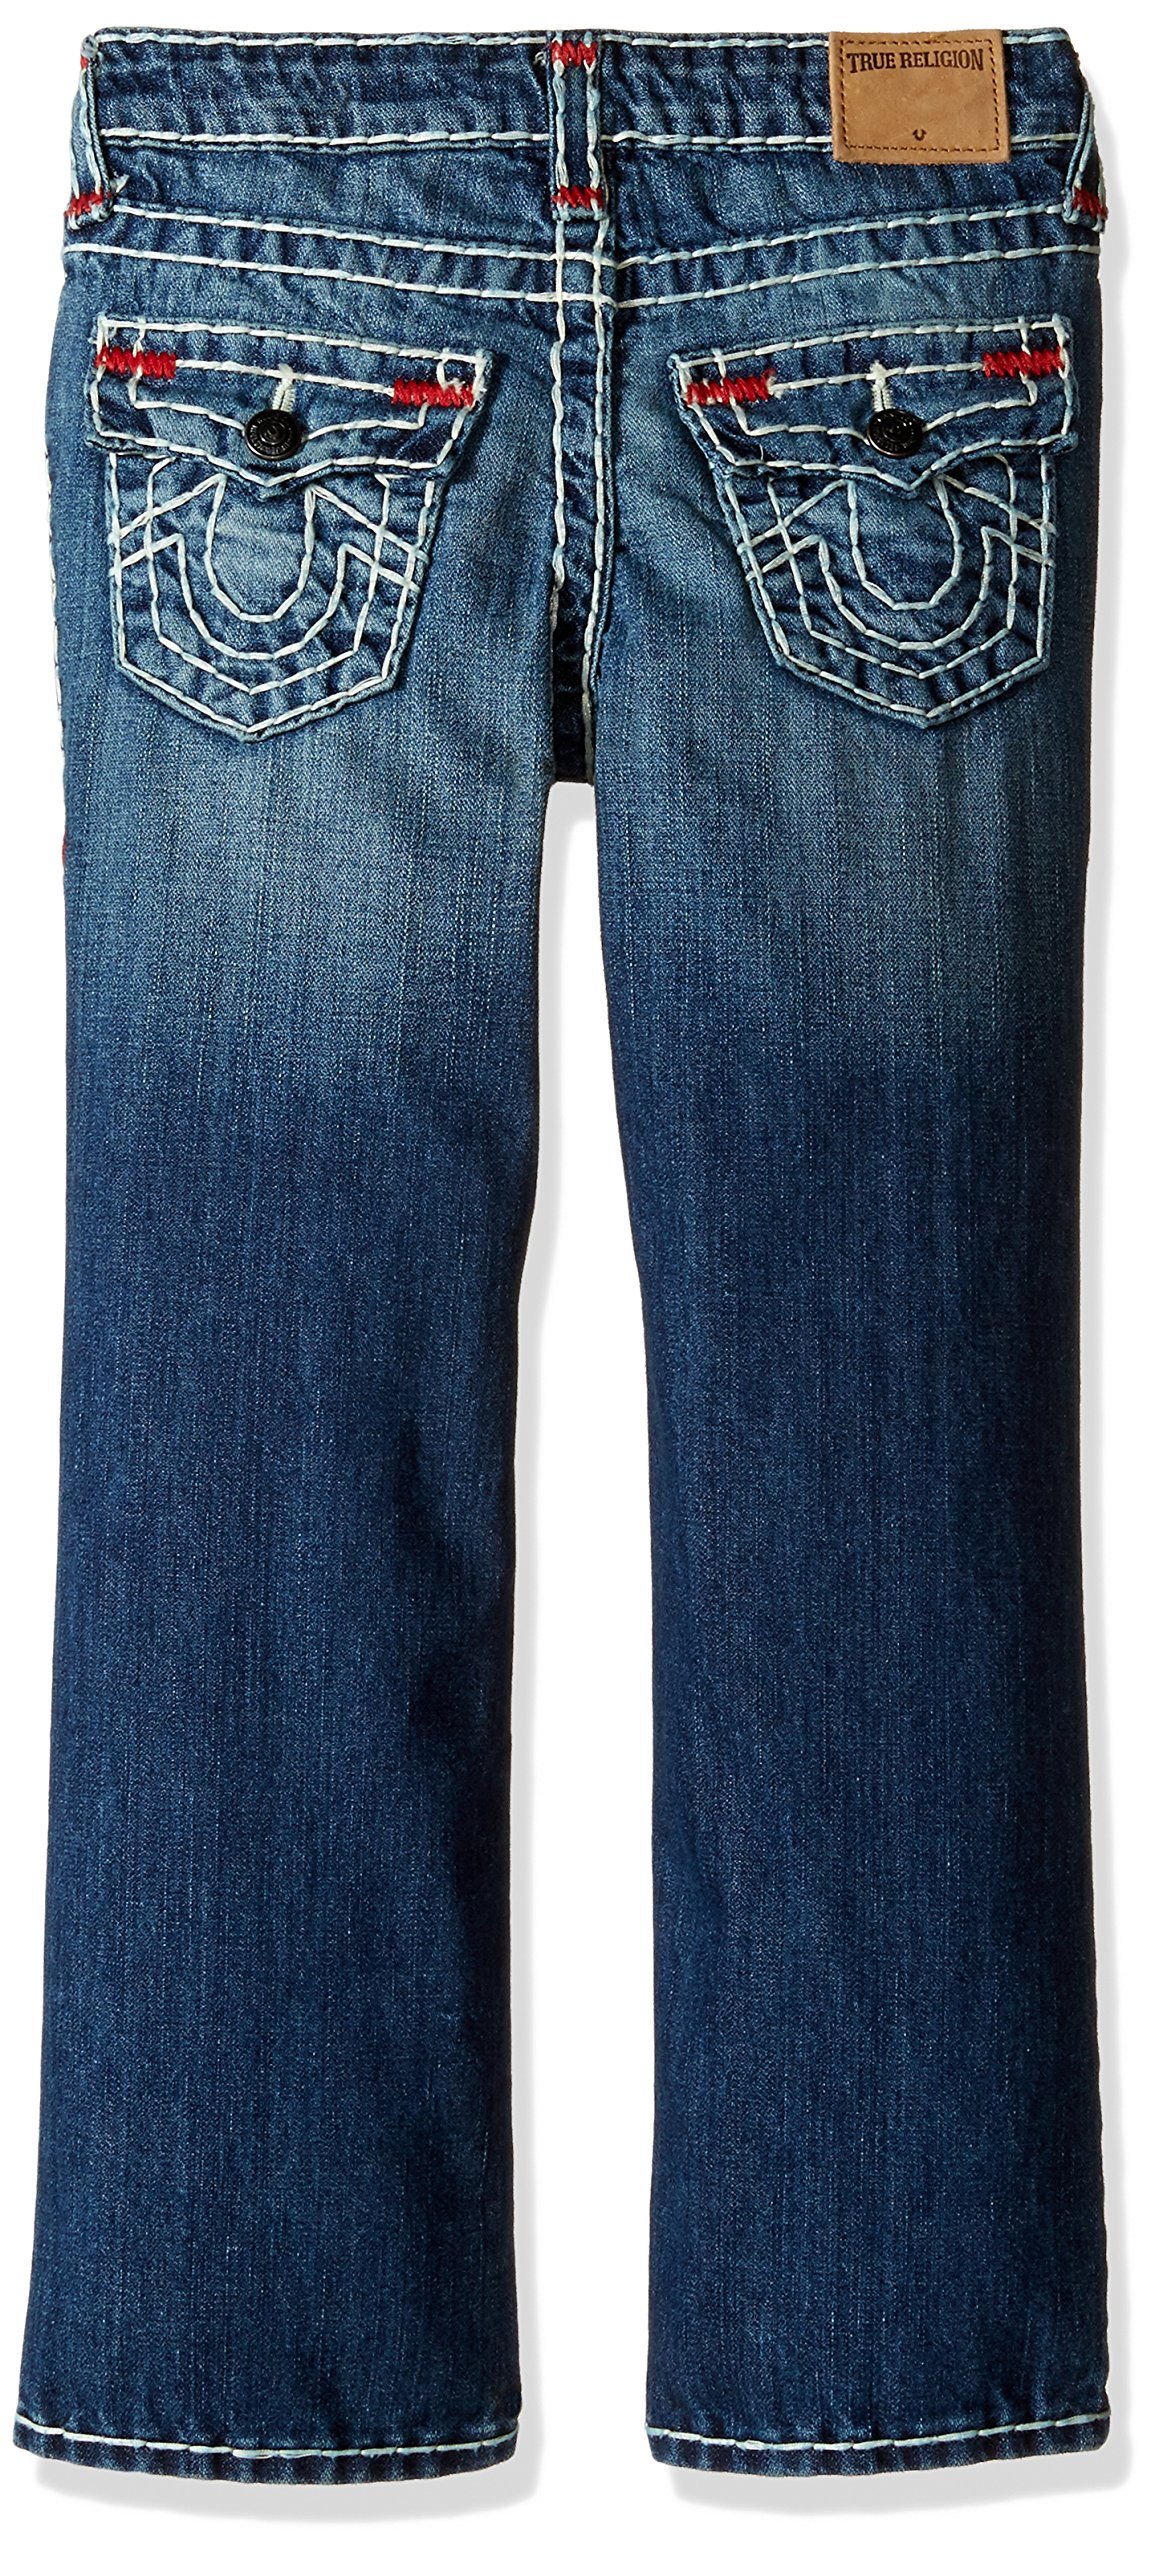 True Religion Boys' Ricky Contrast Super T Jeans, Grand Wash, 18 by True Religion (Image #2)